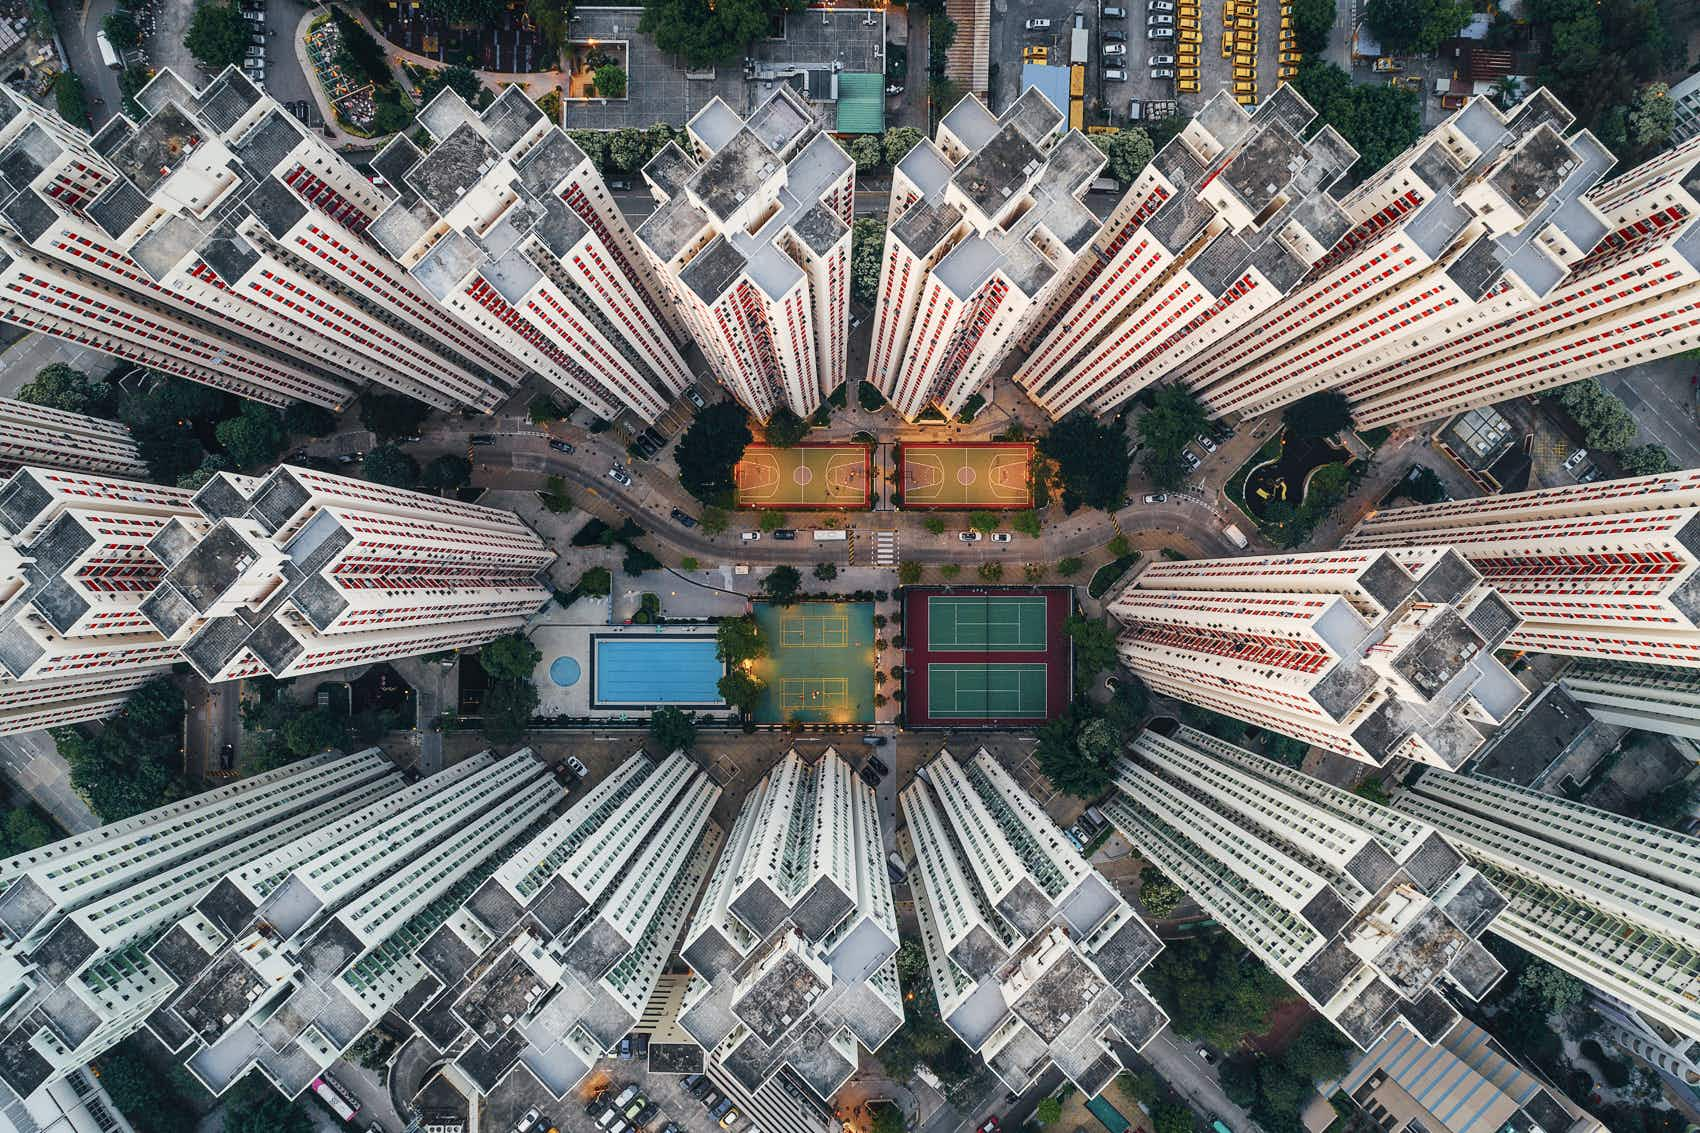 A photographer has captured the unique architecture of Hong Kong from above